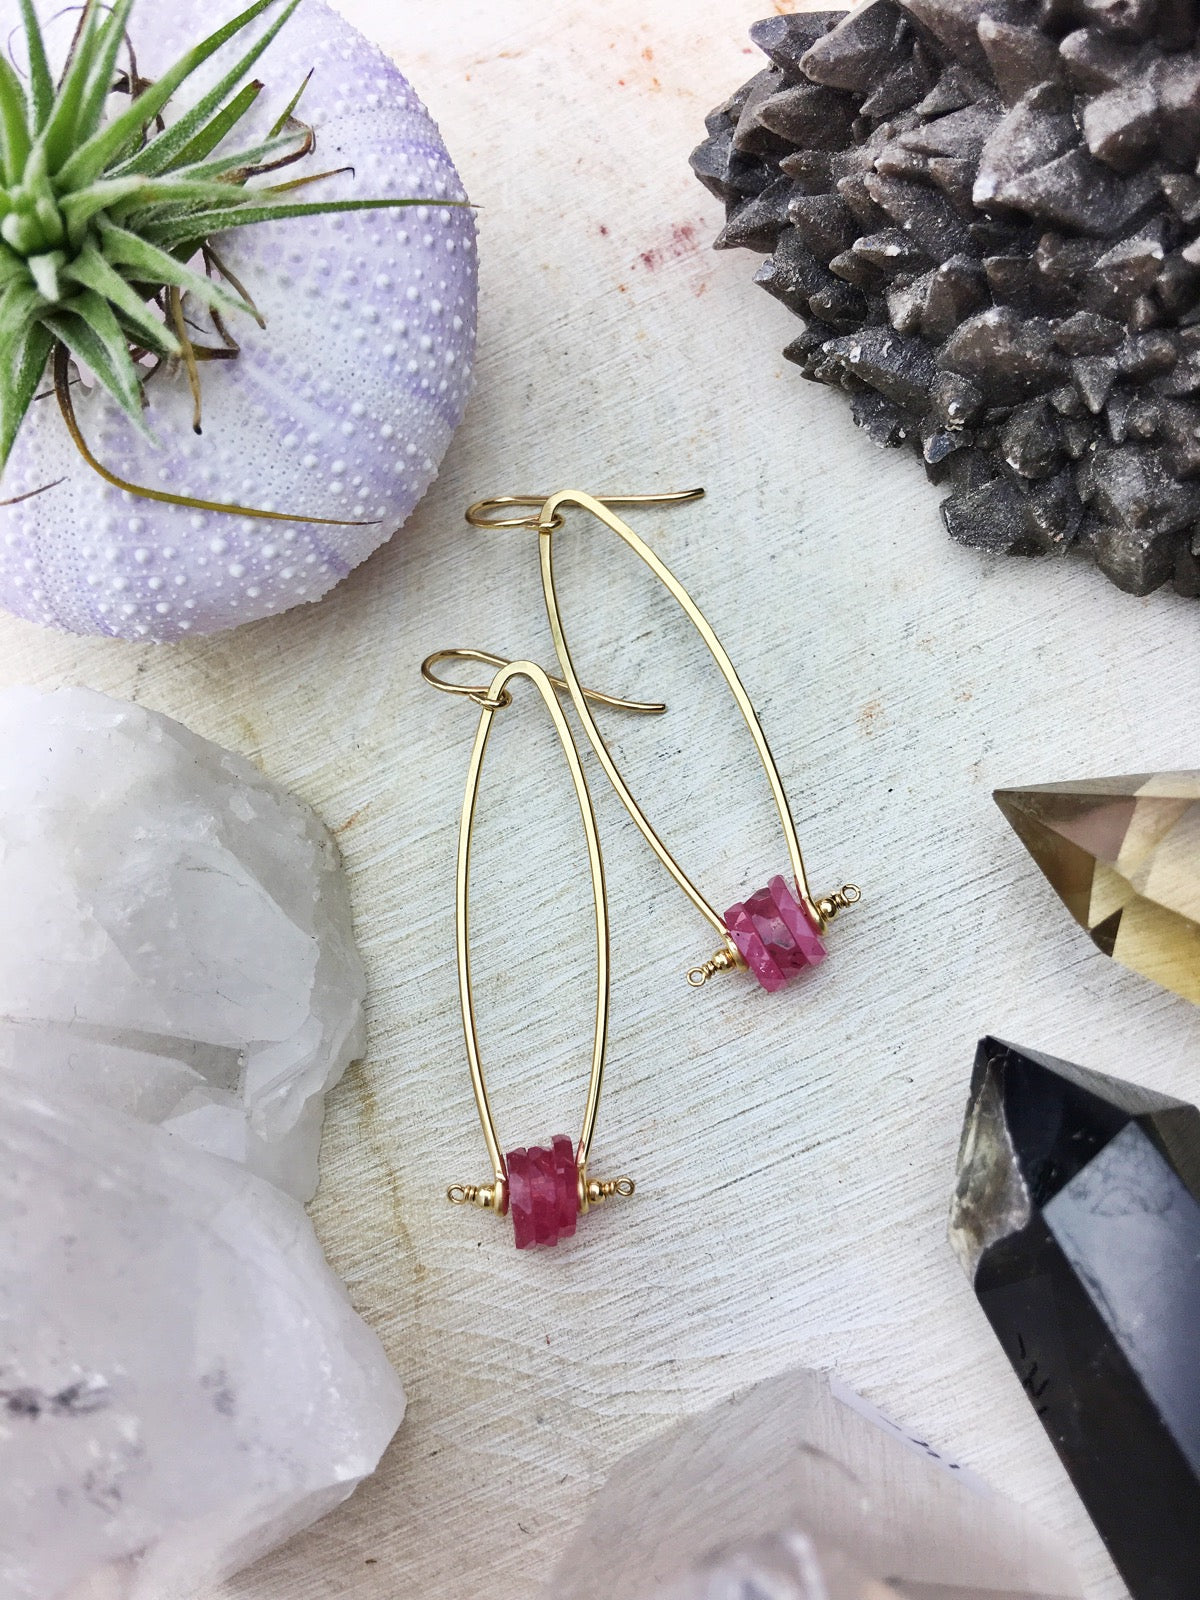 Borealis Earrings - Pink Sapphire Disks 14k Gold Filled Modern Framework